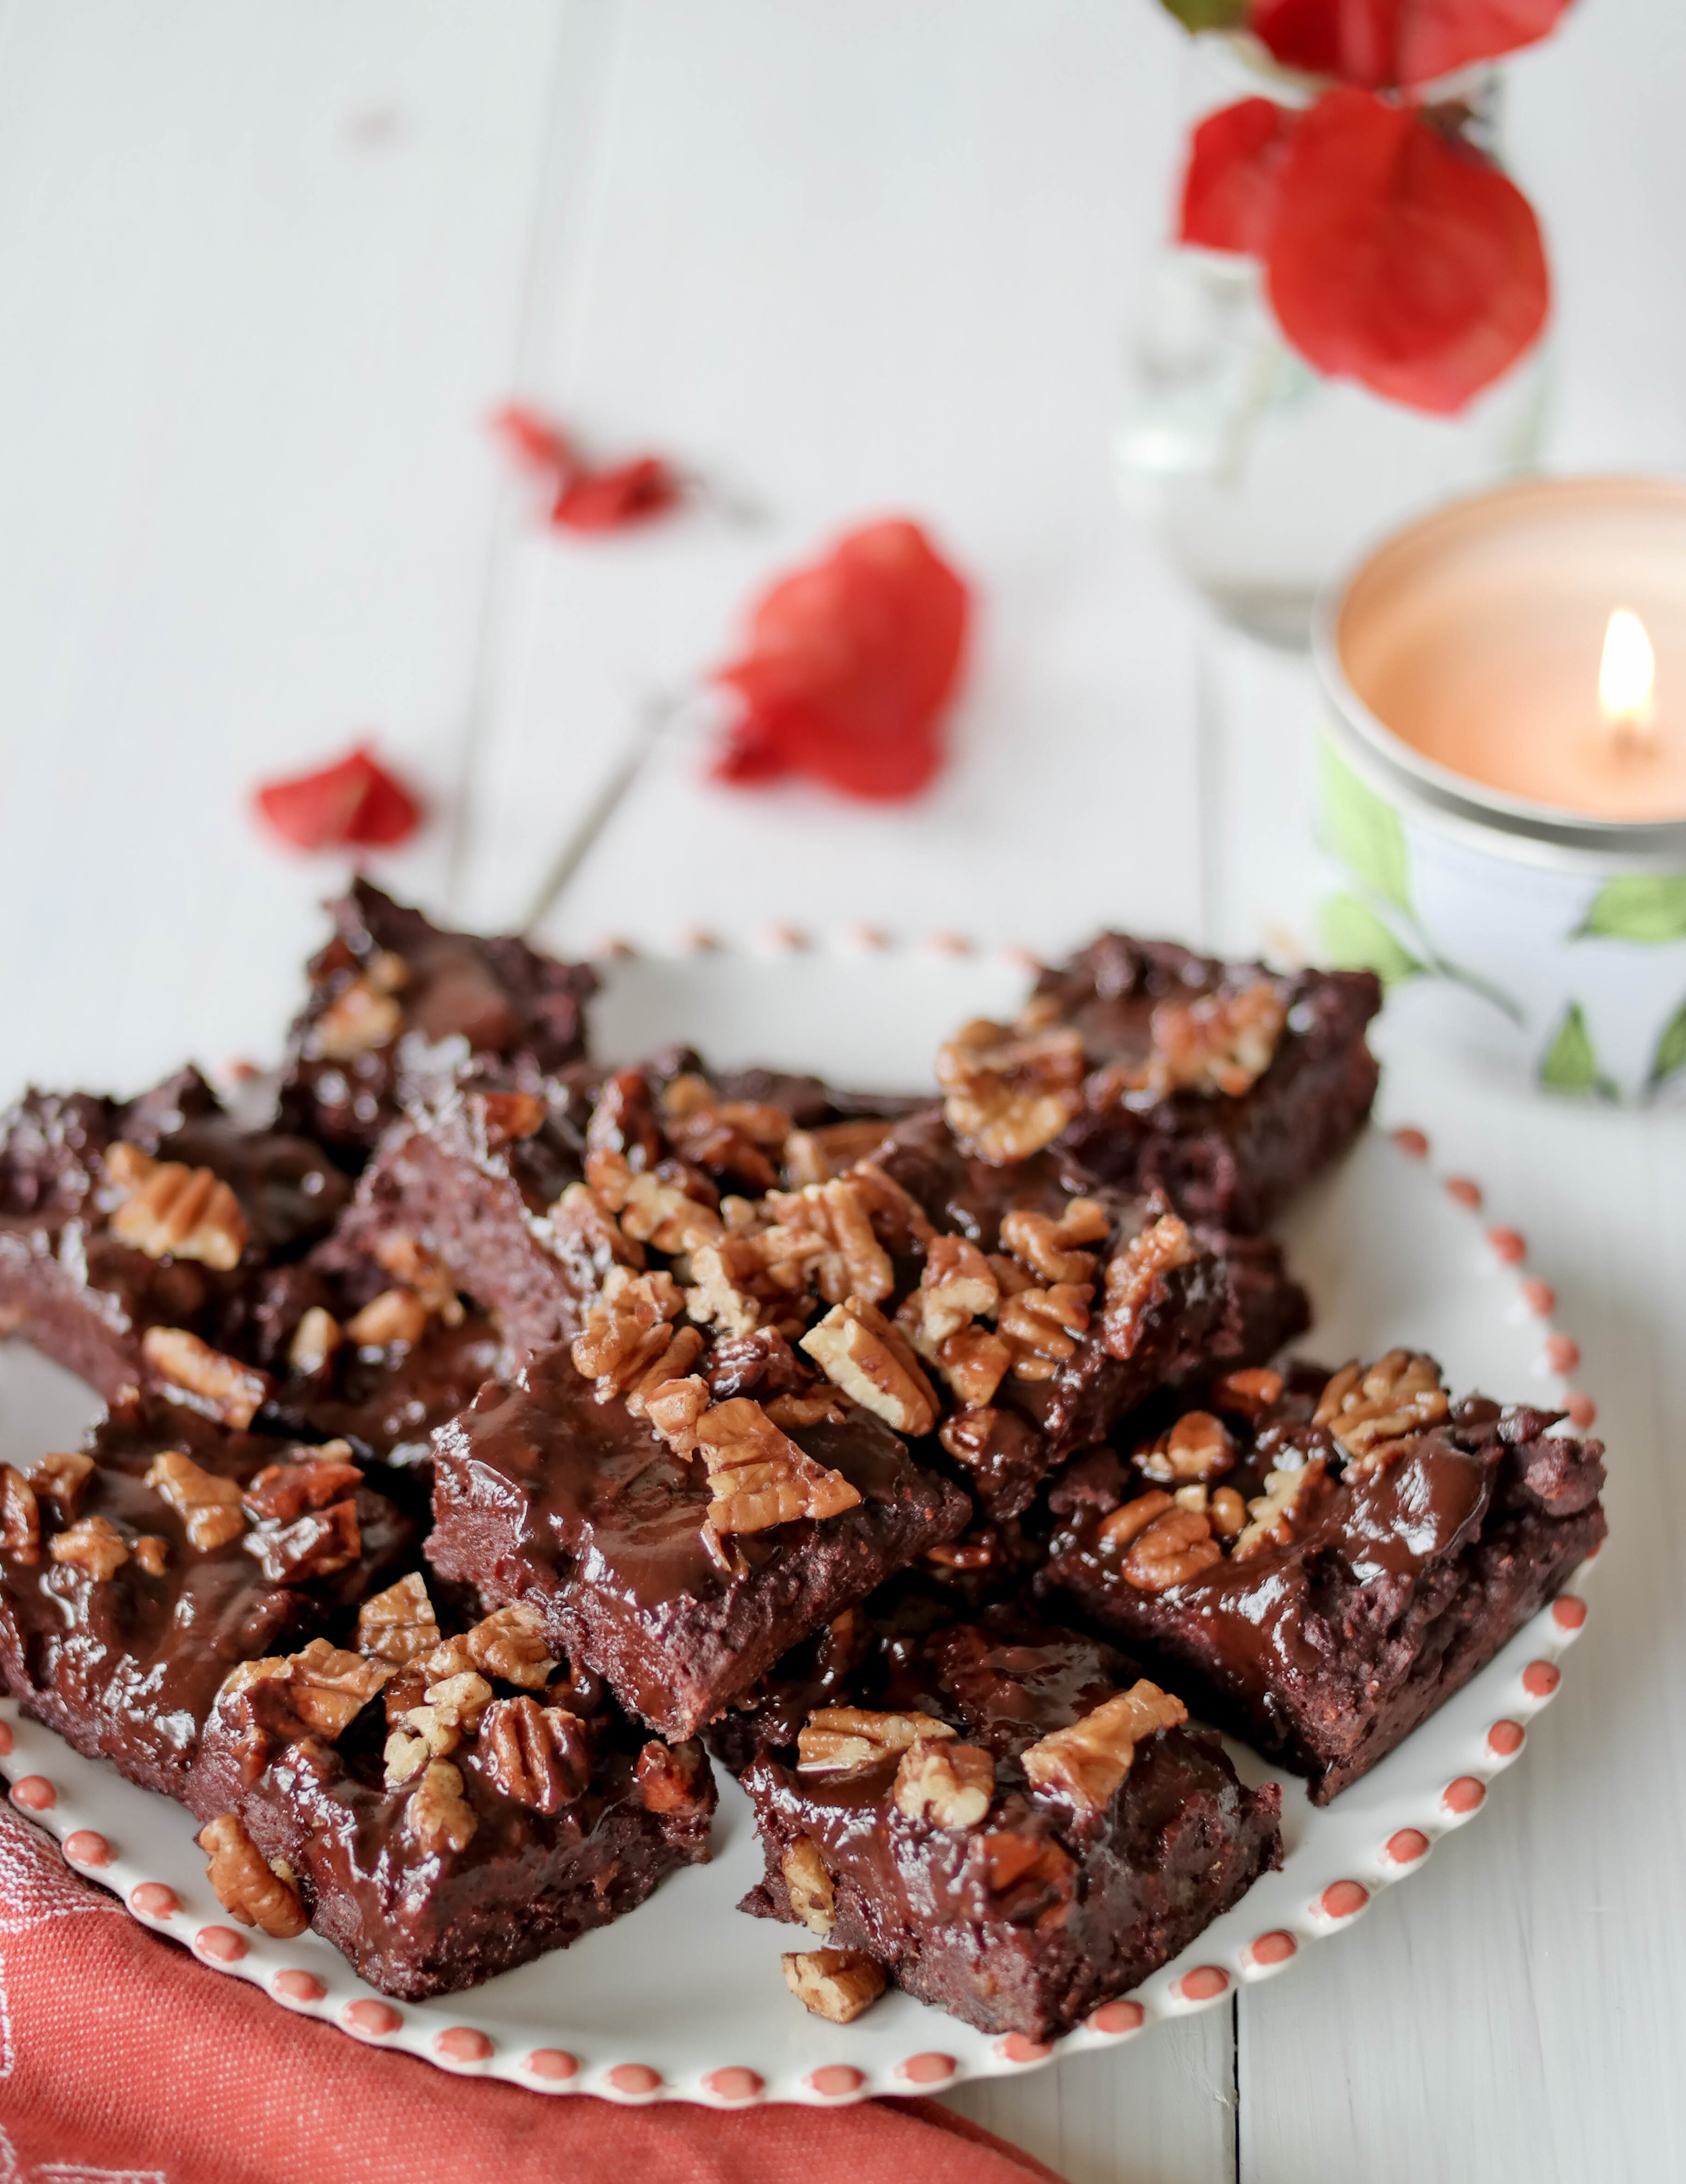 3-Beetroot-Brownies-with-Chocolate-Glaze-and-Toasted-Pecans   www.8thandlake.com